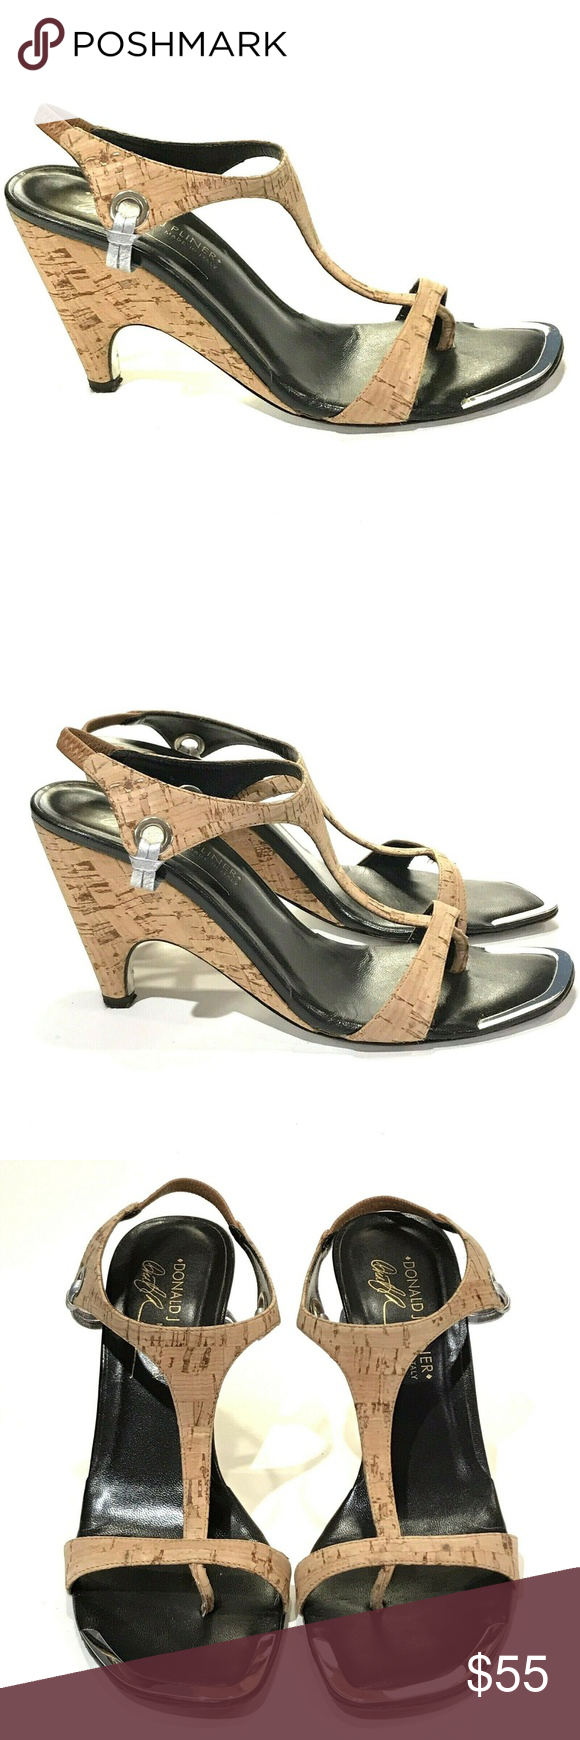 1b5ba14c090 Donald J Pliner Nell Cork Wedge Sandals Size 7 M Women s Donald J Pliner  Cork Nell Sandals with elastic ankle strap